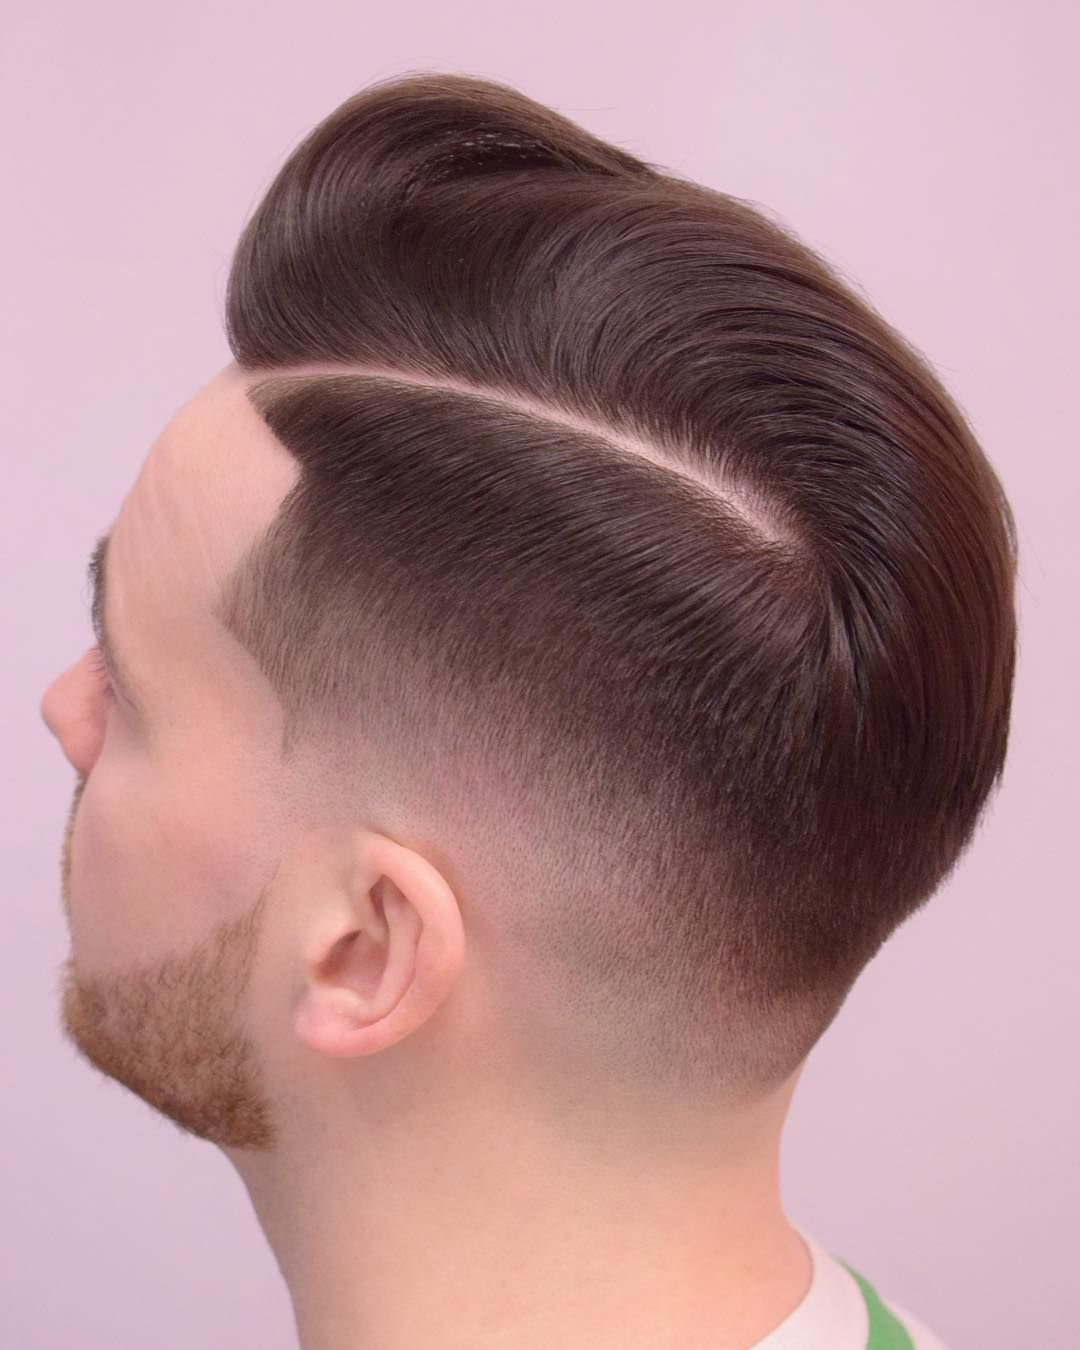 Classic Textured Hairstyles For Men ���รงผม